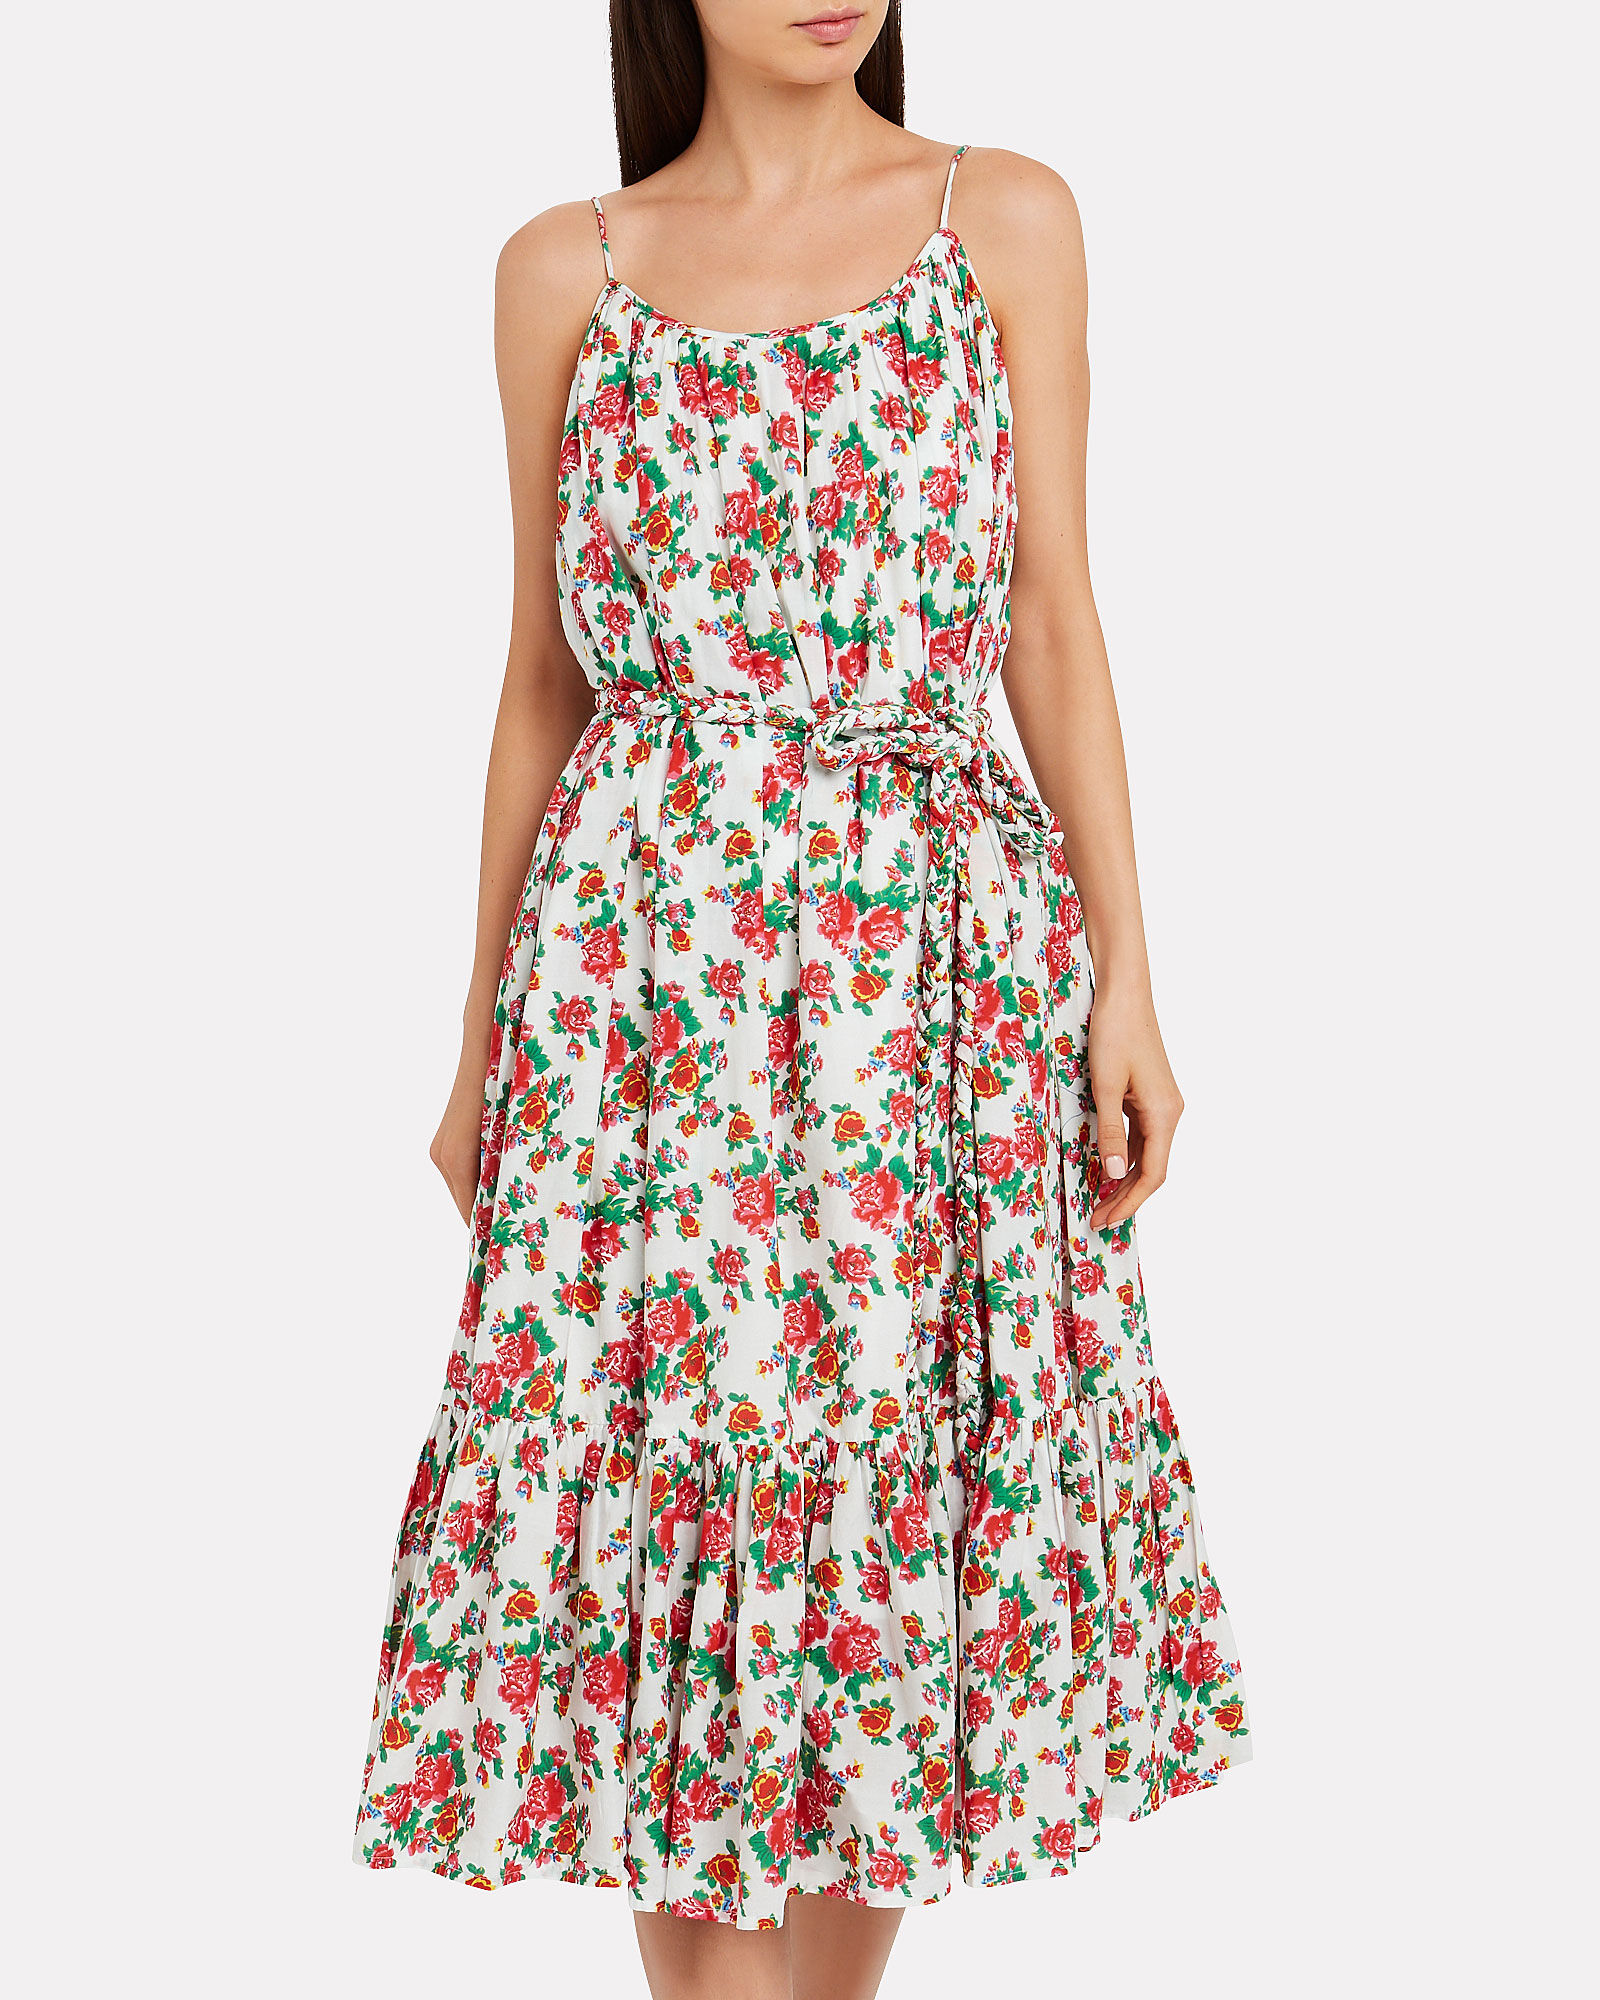 Lea Dazzle Floral Pleated Dress, MULTI, hi-res